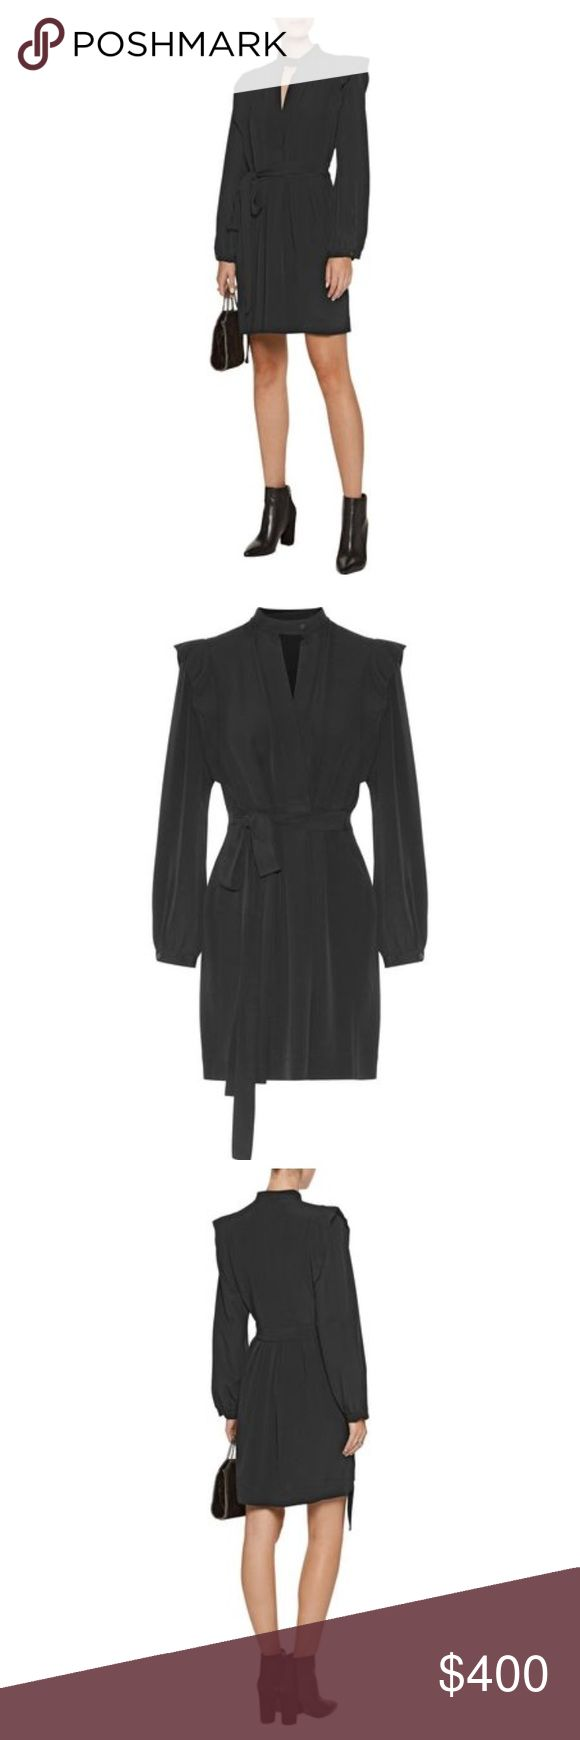 Isabel Marant Brad pleated crepe mini wrap dress Crepe de chine buttoned cuffs, wrap effect bodice, waist ties, pleated skirt, ruffle trims. Button fastening at front. Black. Isabel Marant Dresses Mini